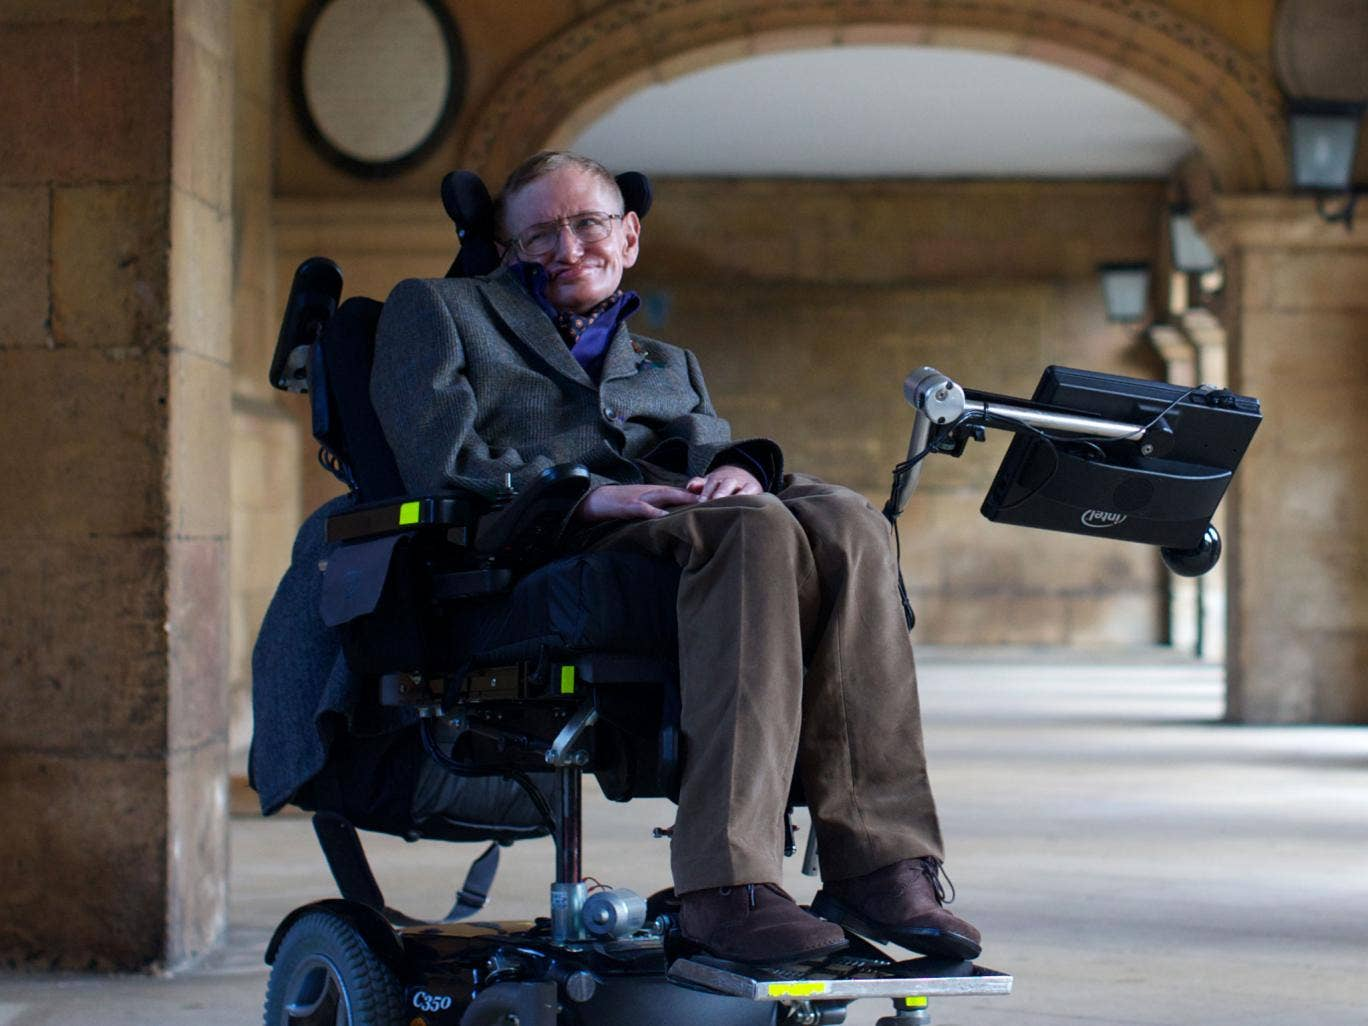 Hawking: 'The NHS must be preserved from commercial interests who want to privatise it'